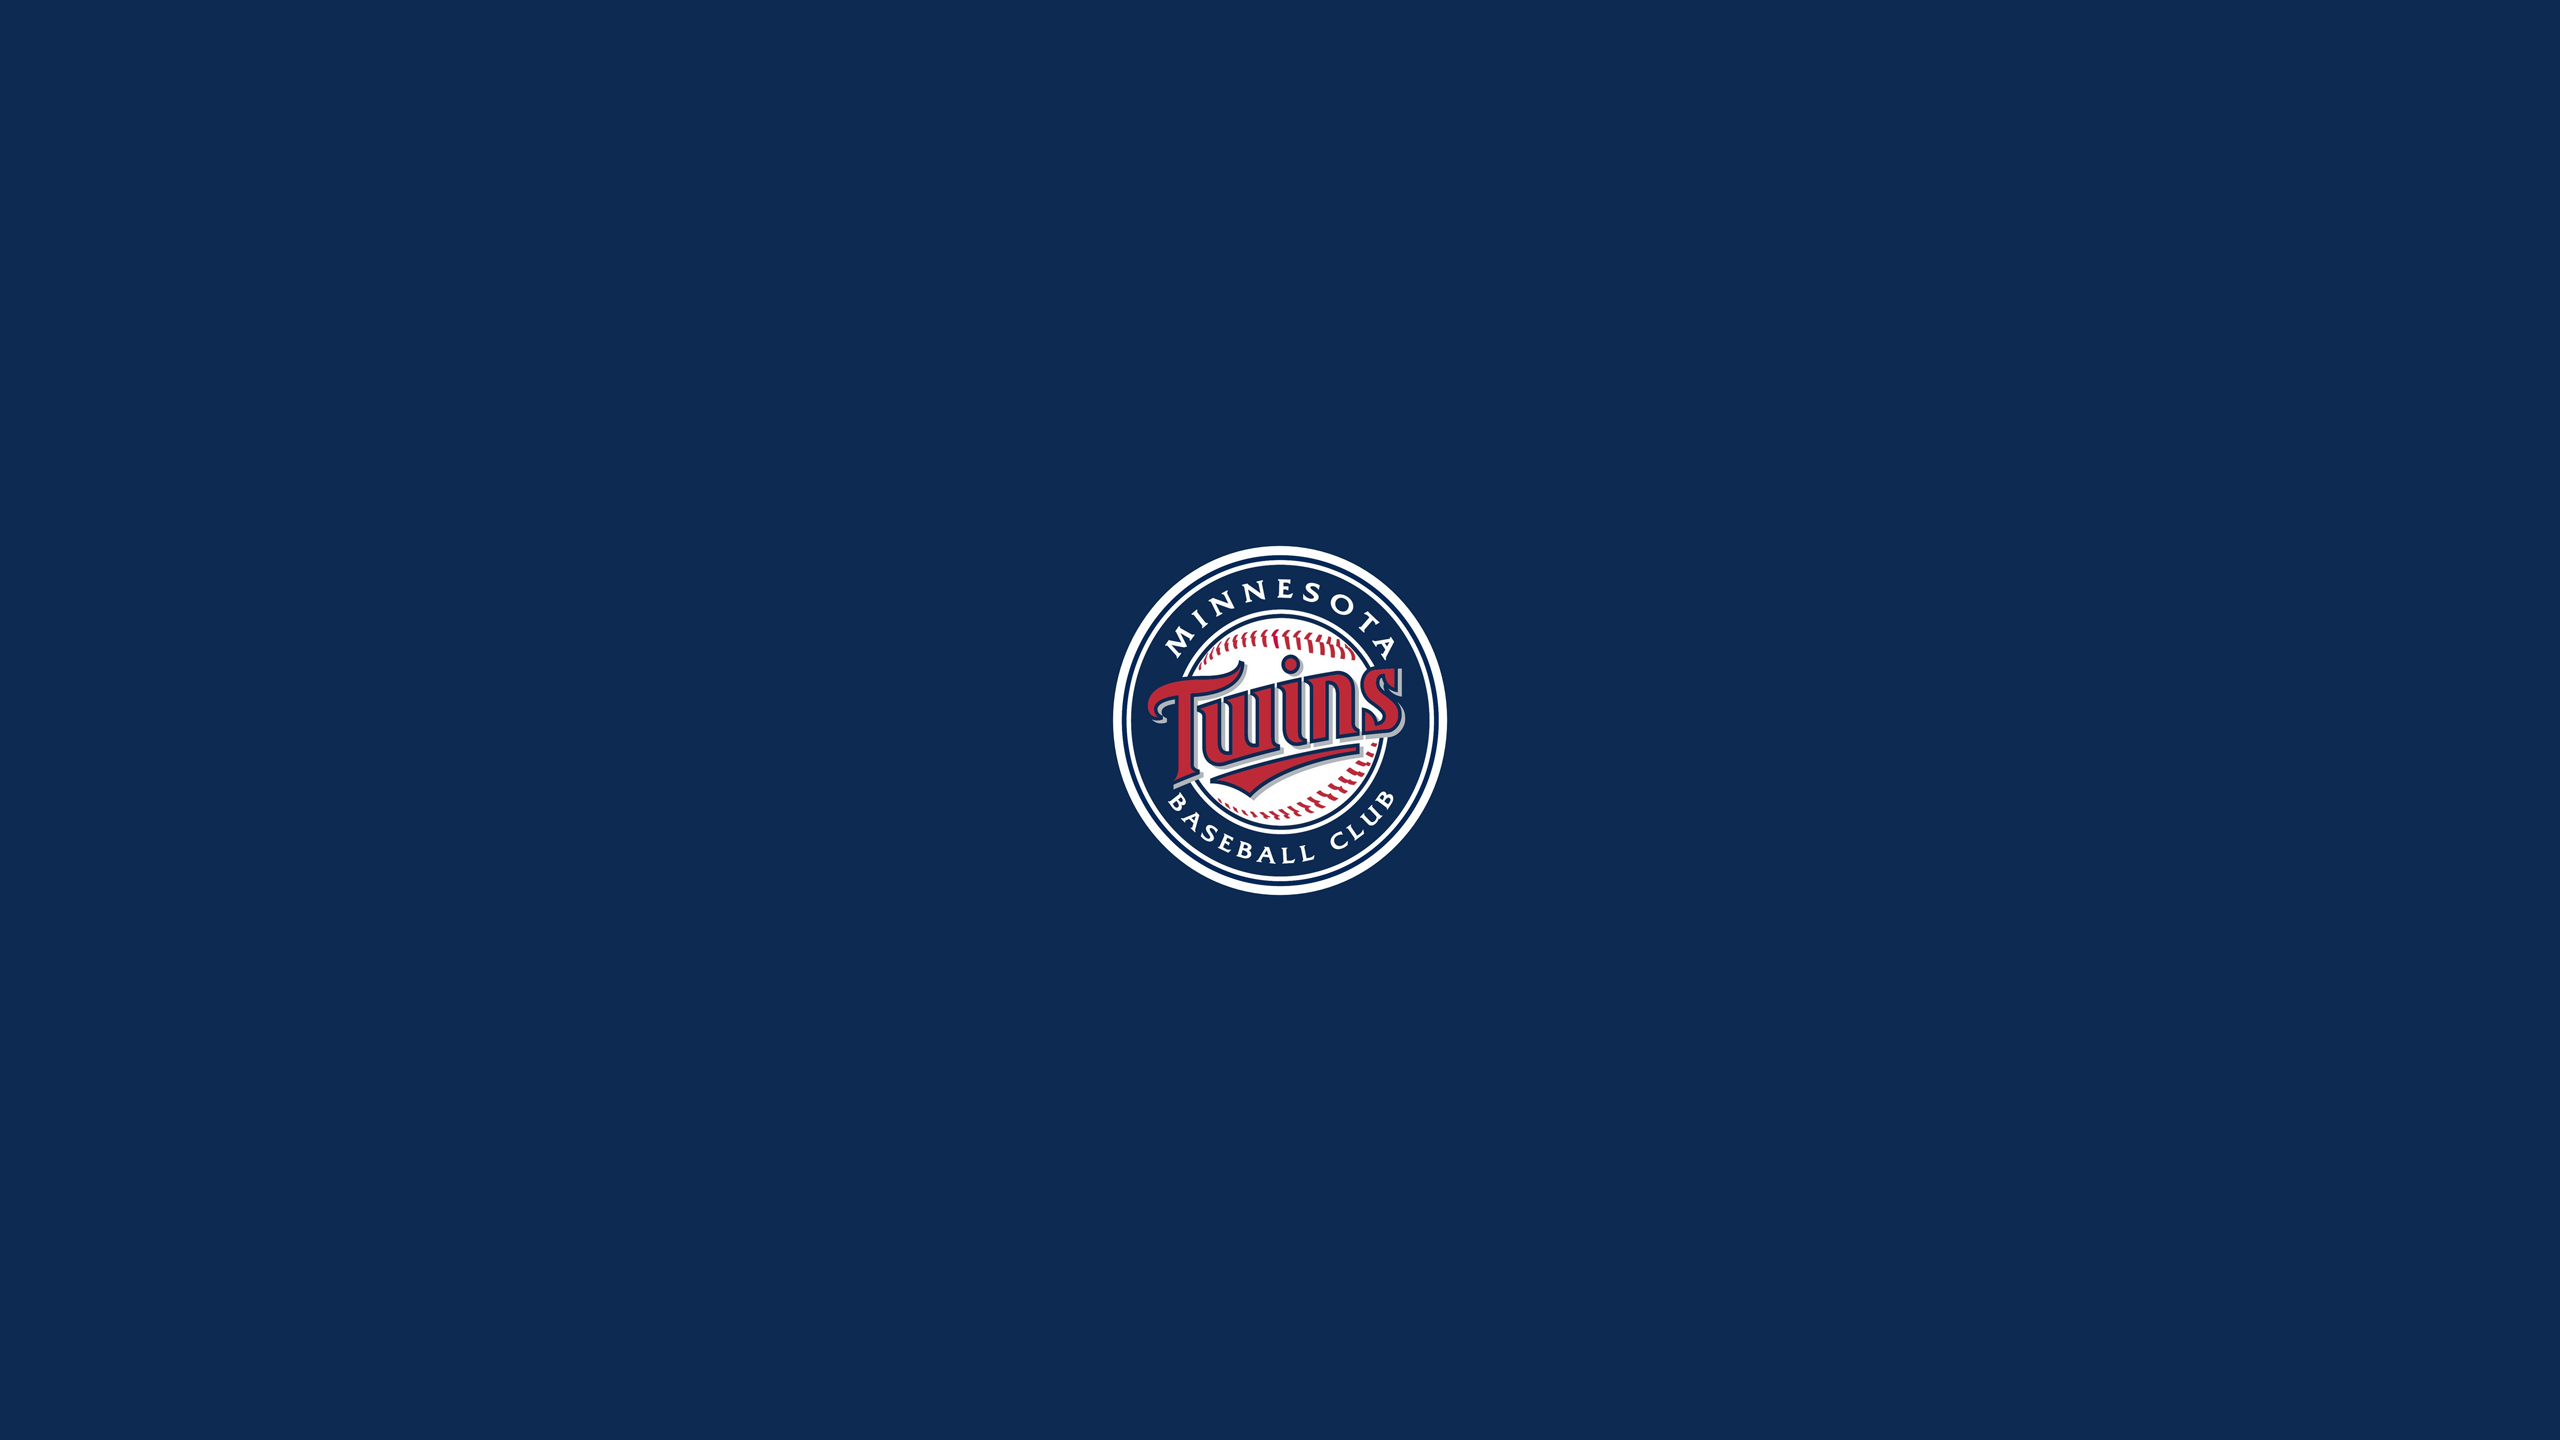 RFQ.7575 Minnesota Twins 0.16 Mb